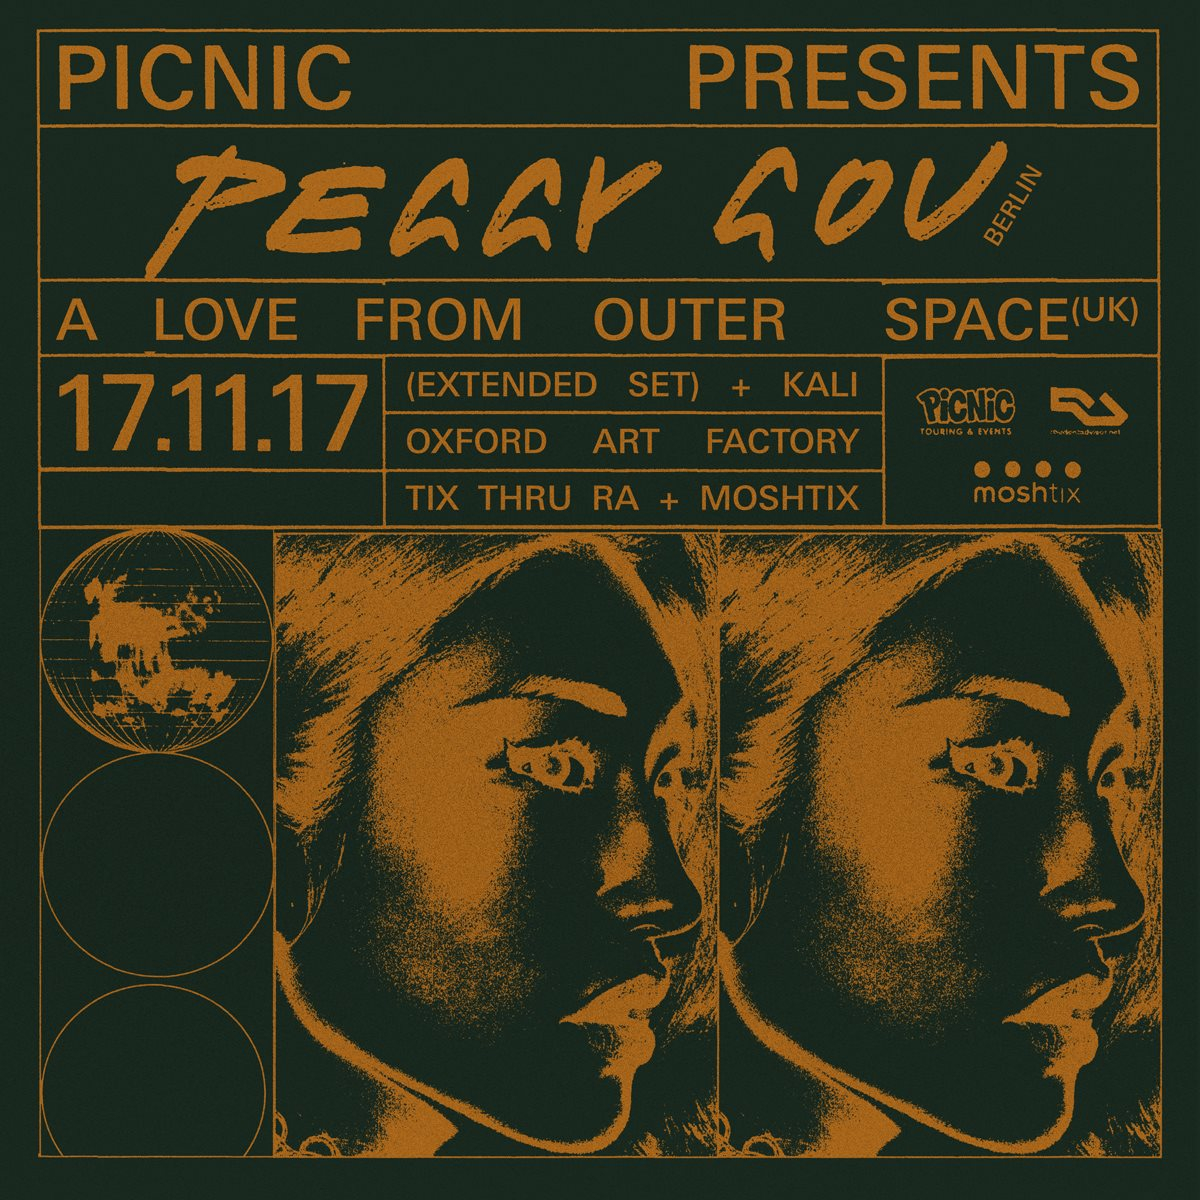 Picnic presents Peggy Gou + A Love From Outer Space - Flyer front